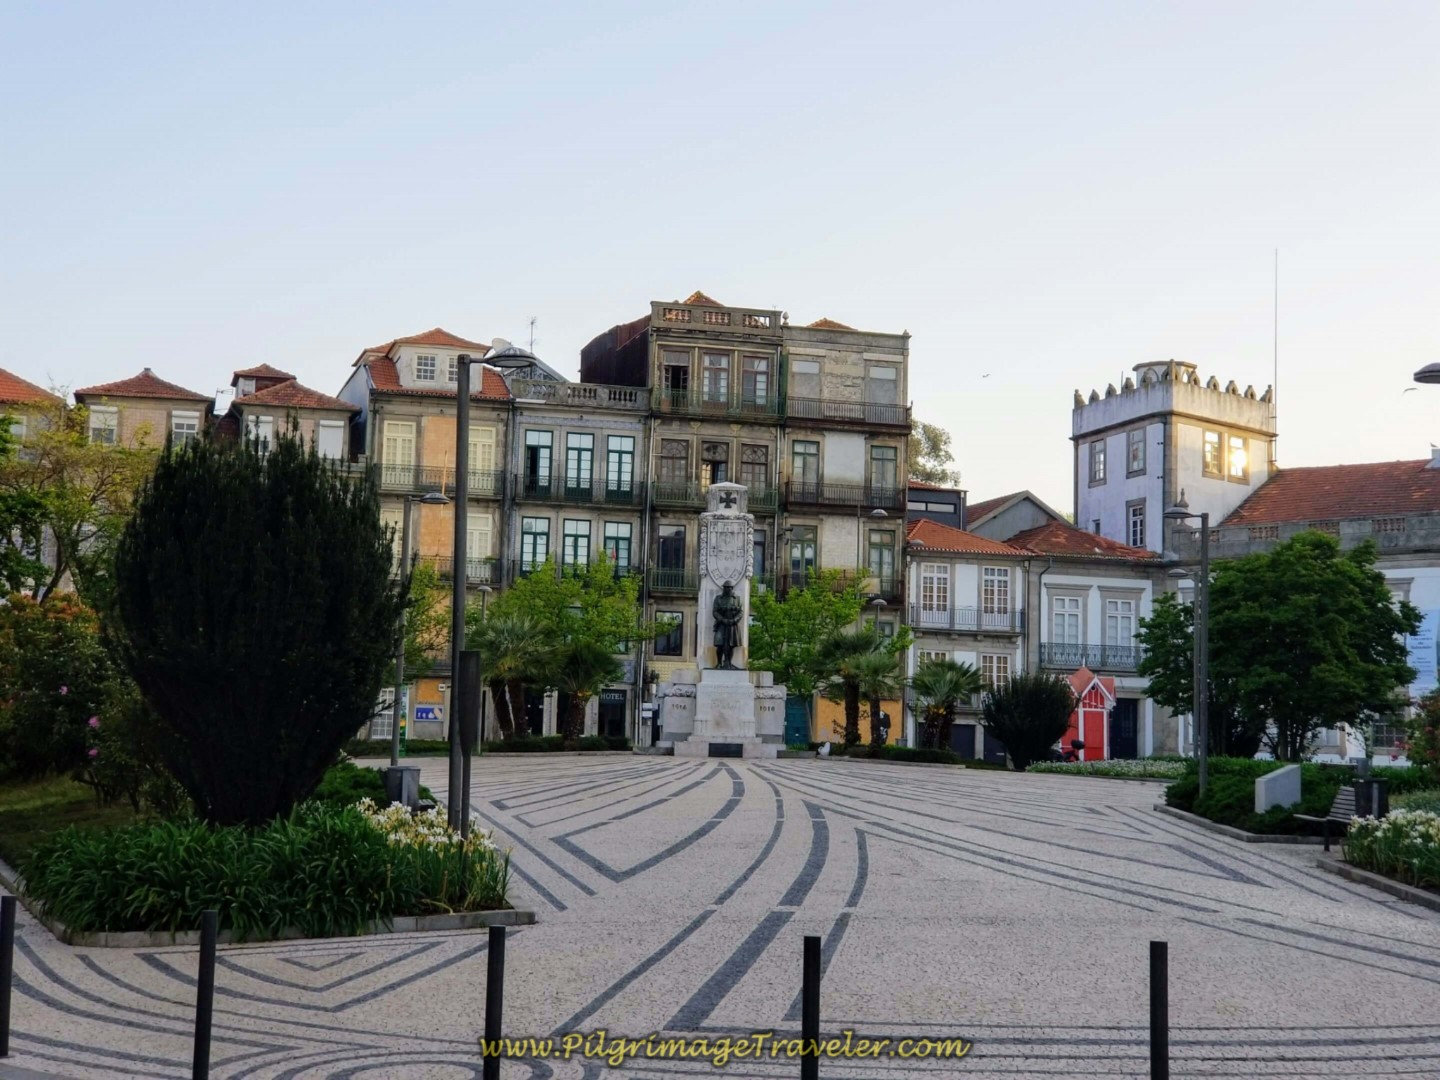 Turn Left at Statue in the Praça de Carlos Alberto in Porto on day fifteen on the Central Route of the Camino Portugués